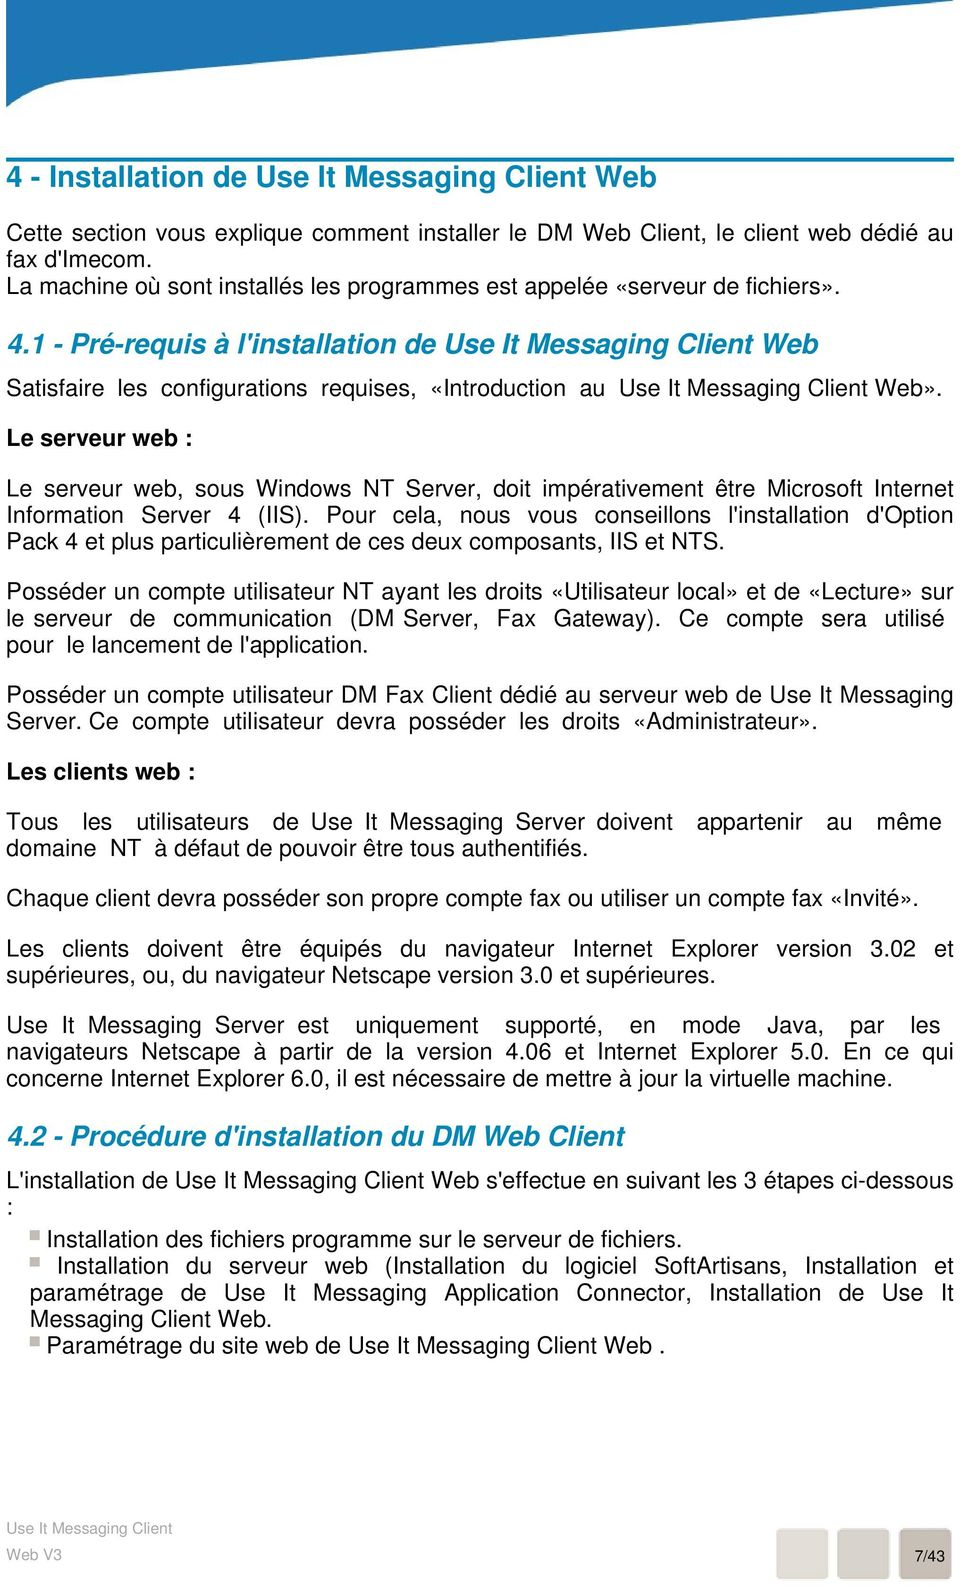 Le serveur web : Le serveur web, sous Windows NT Server, doit impérativement être Microsoft Internet Information Server 4 (IIS).